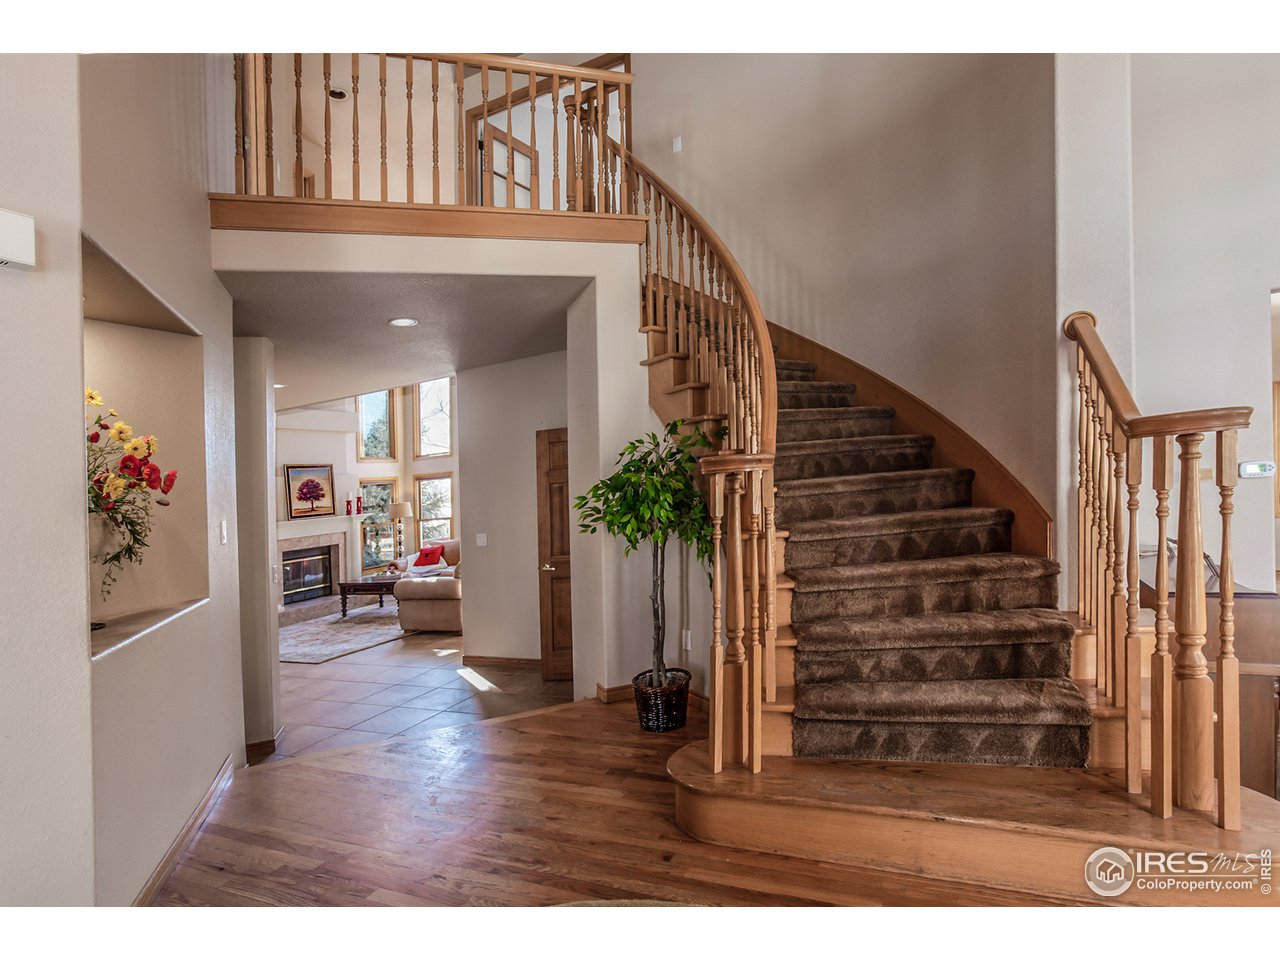 Beautiful curved staircase